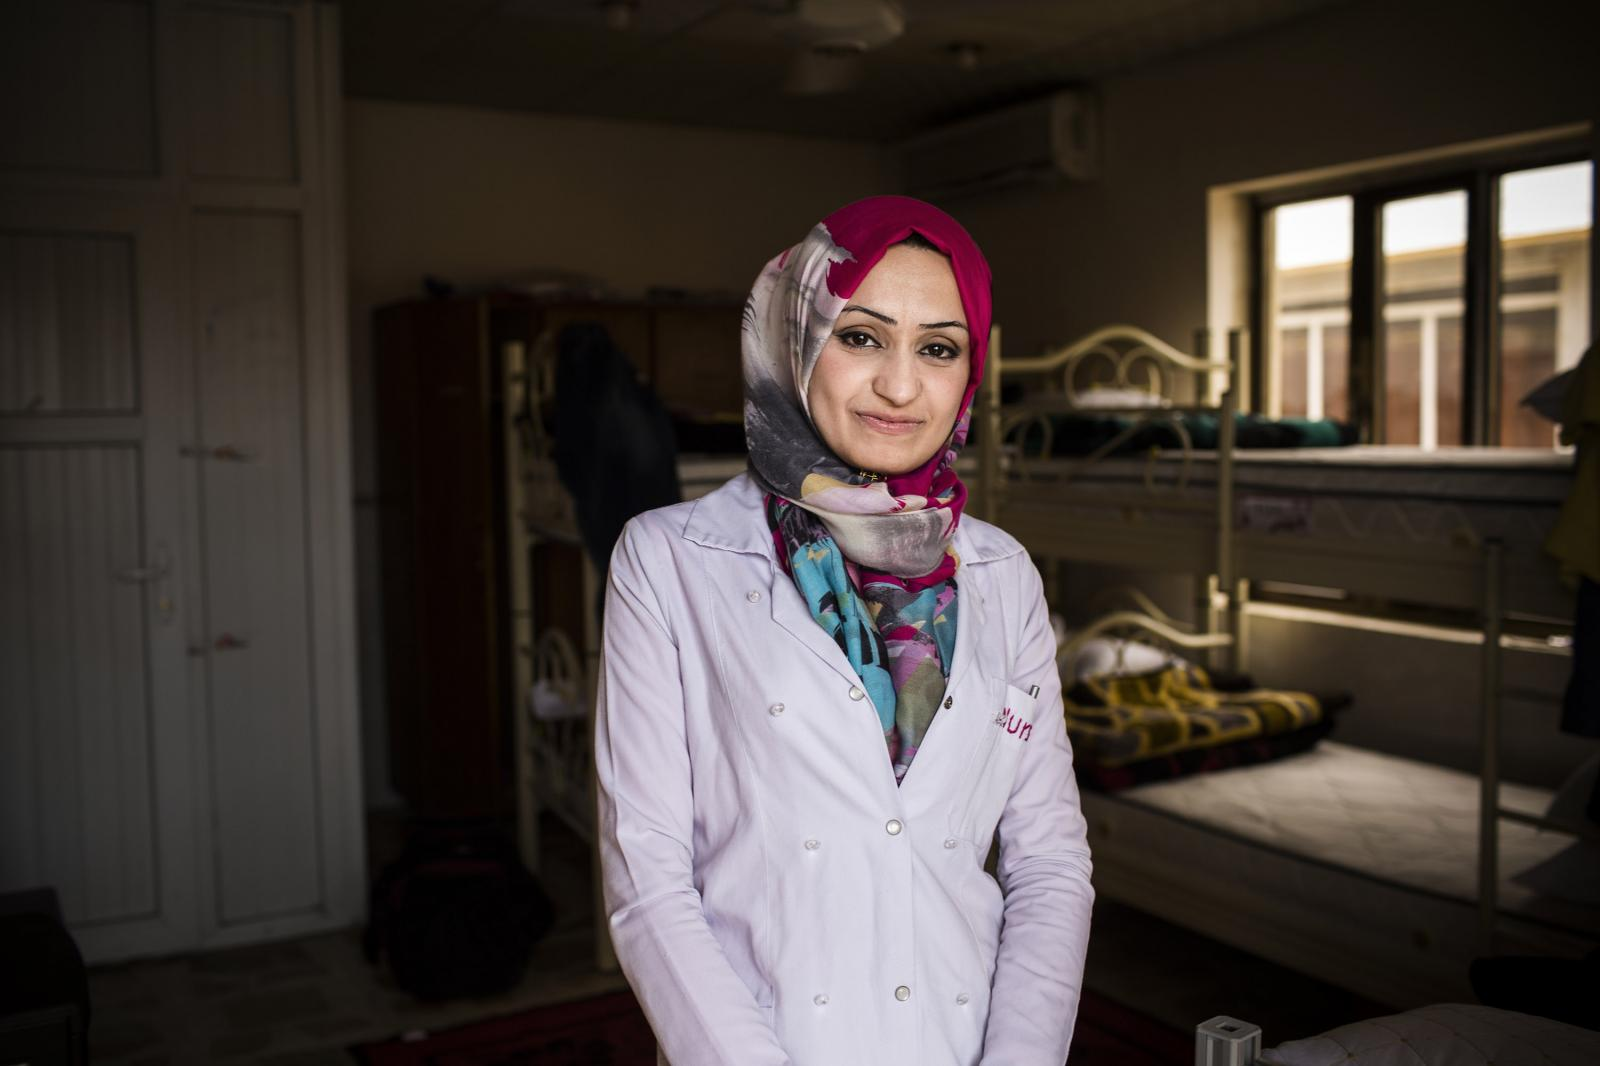 Portrait of Aswan Ismael. She is from East Mosul. She has been working for MSF for the latest two weeks. She worked one year in a Mosul hospital under DAESH´s regimen. After that, she had to quite. Hamdaniya, Iraq 2017. Diego Ibarra Sánchez for MSF